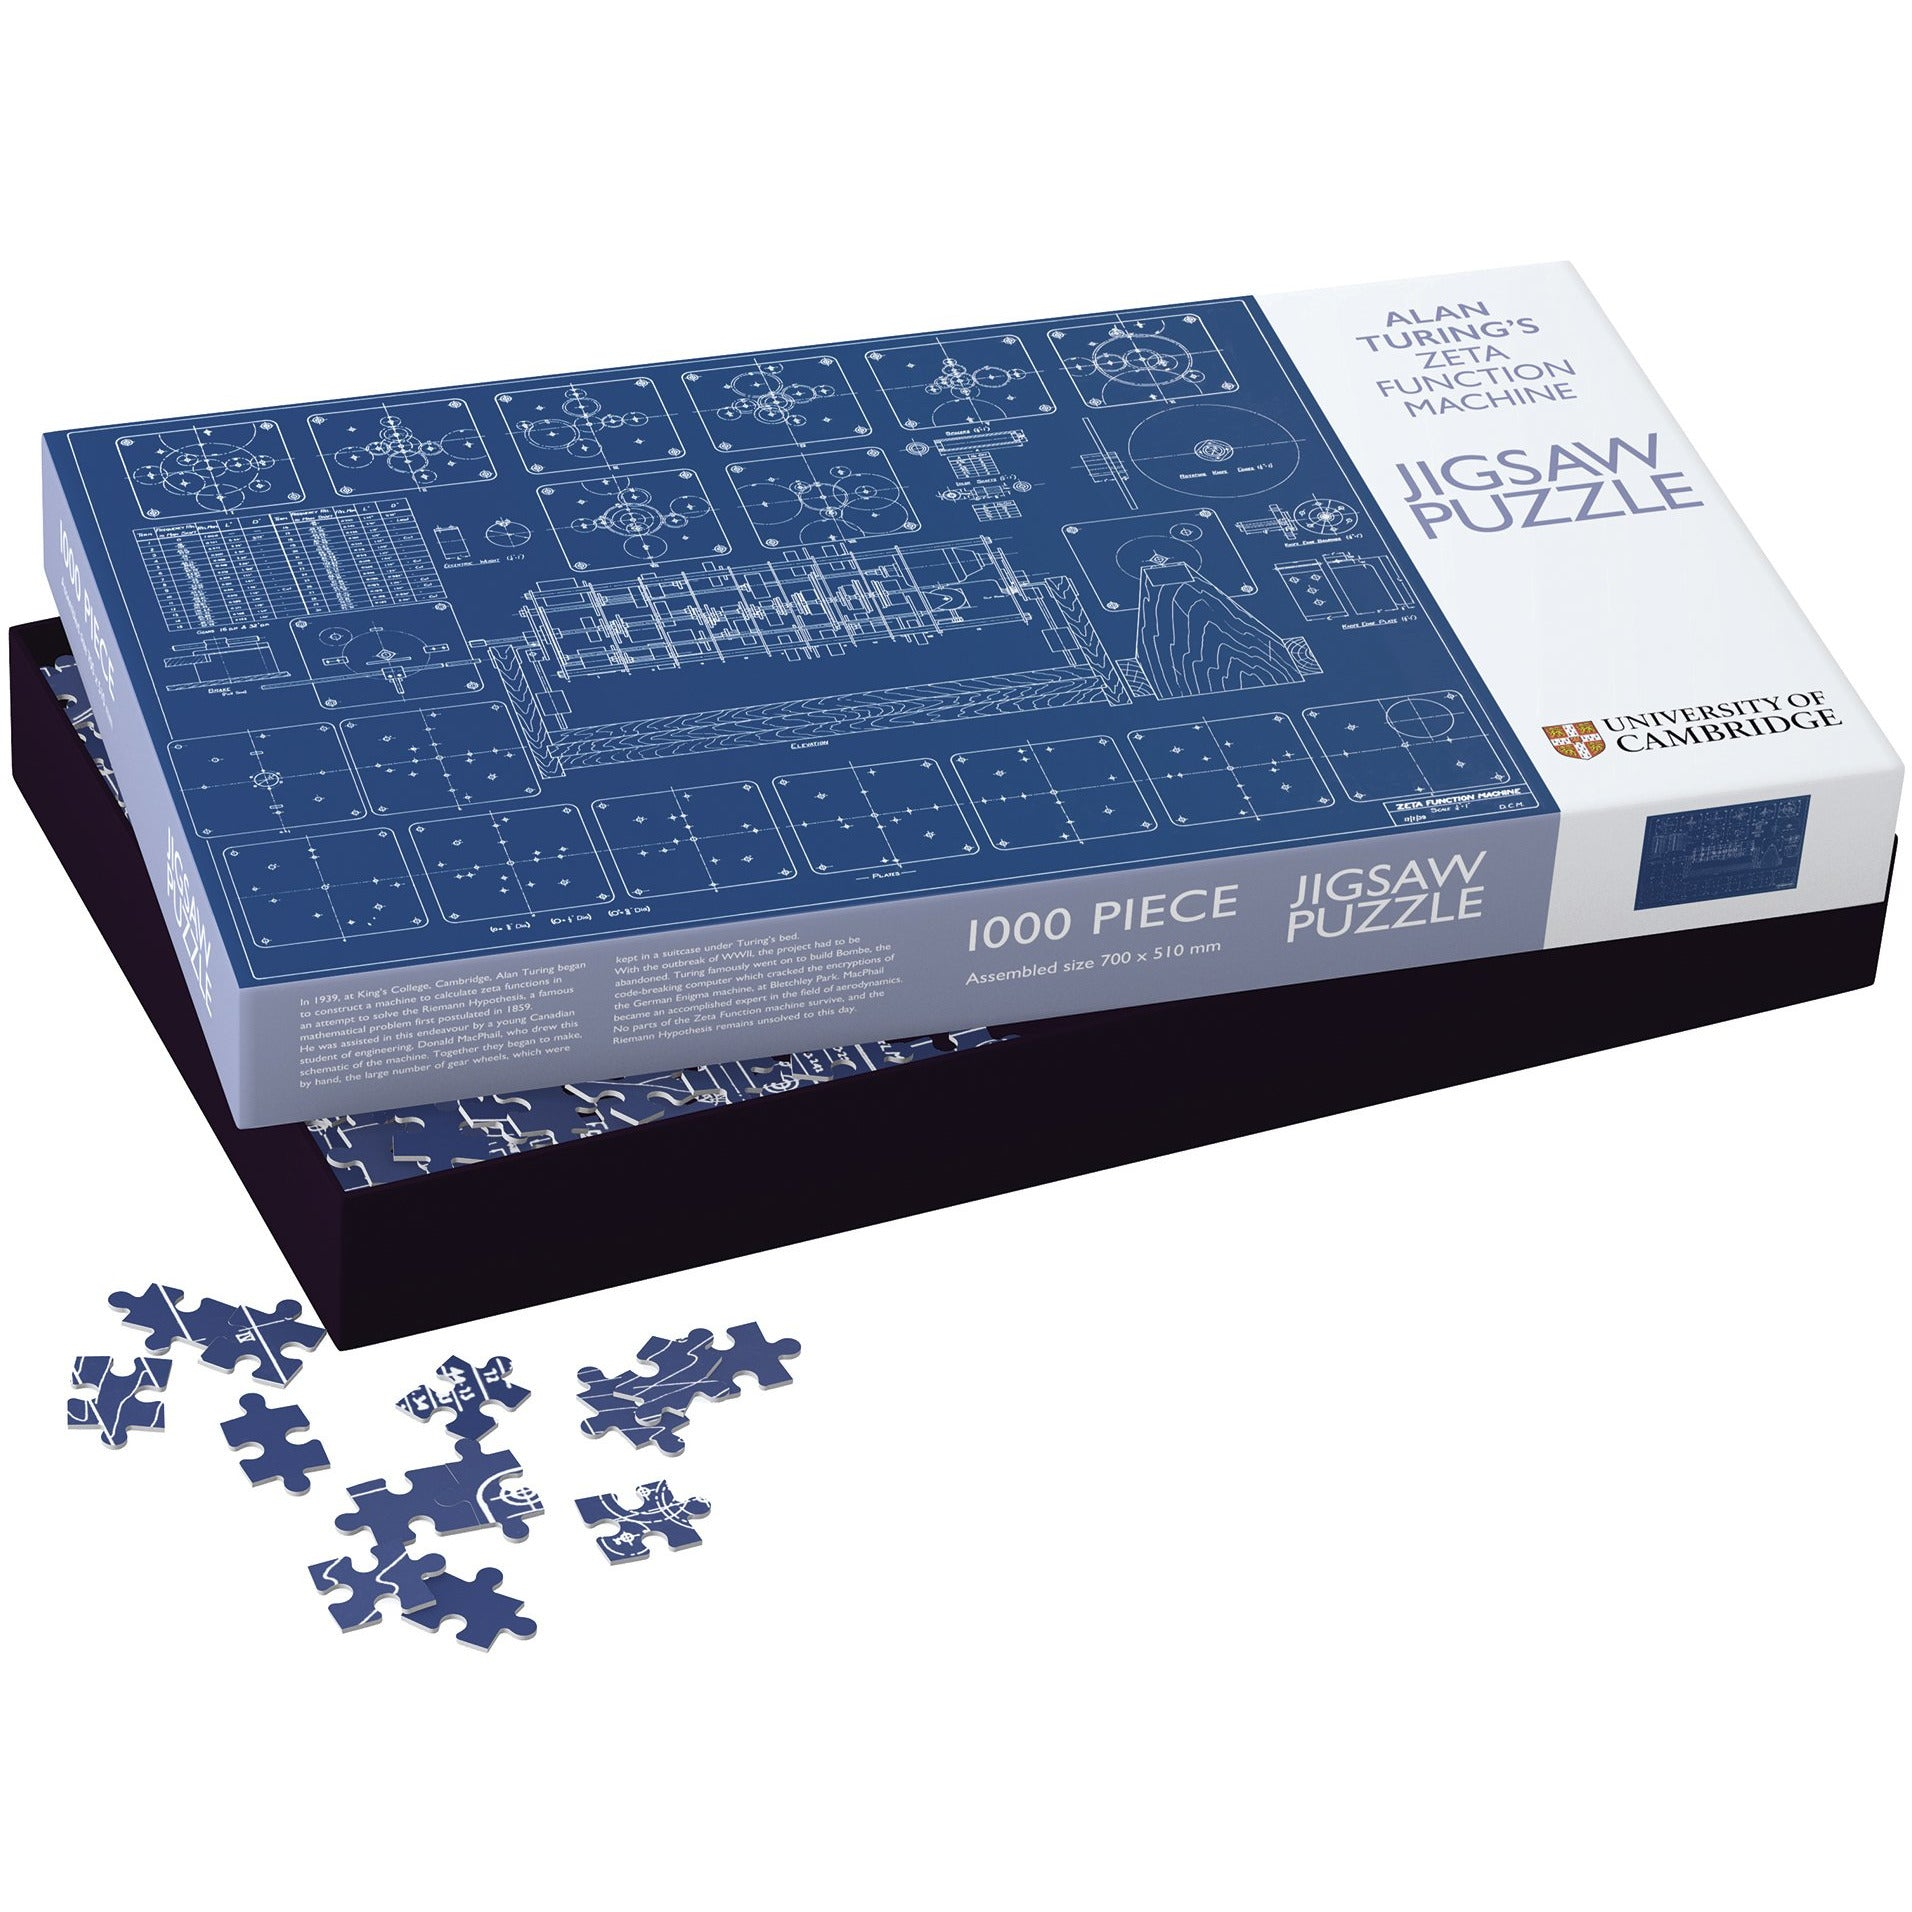 Featured image for the project: Alan Turing Zeta Machine - 1000 piece jigsaw puzzle